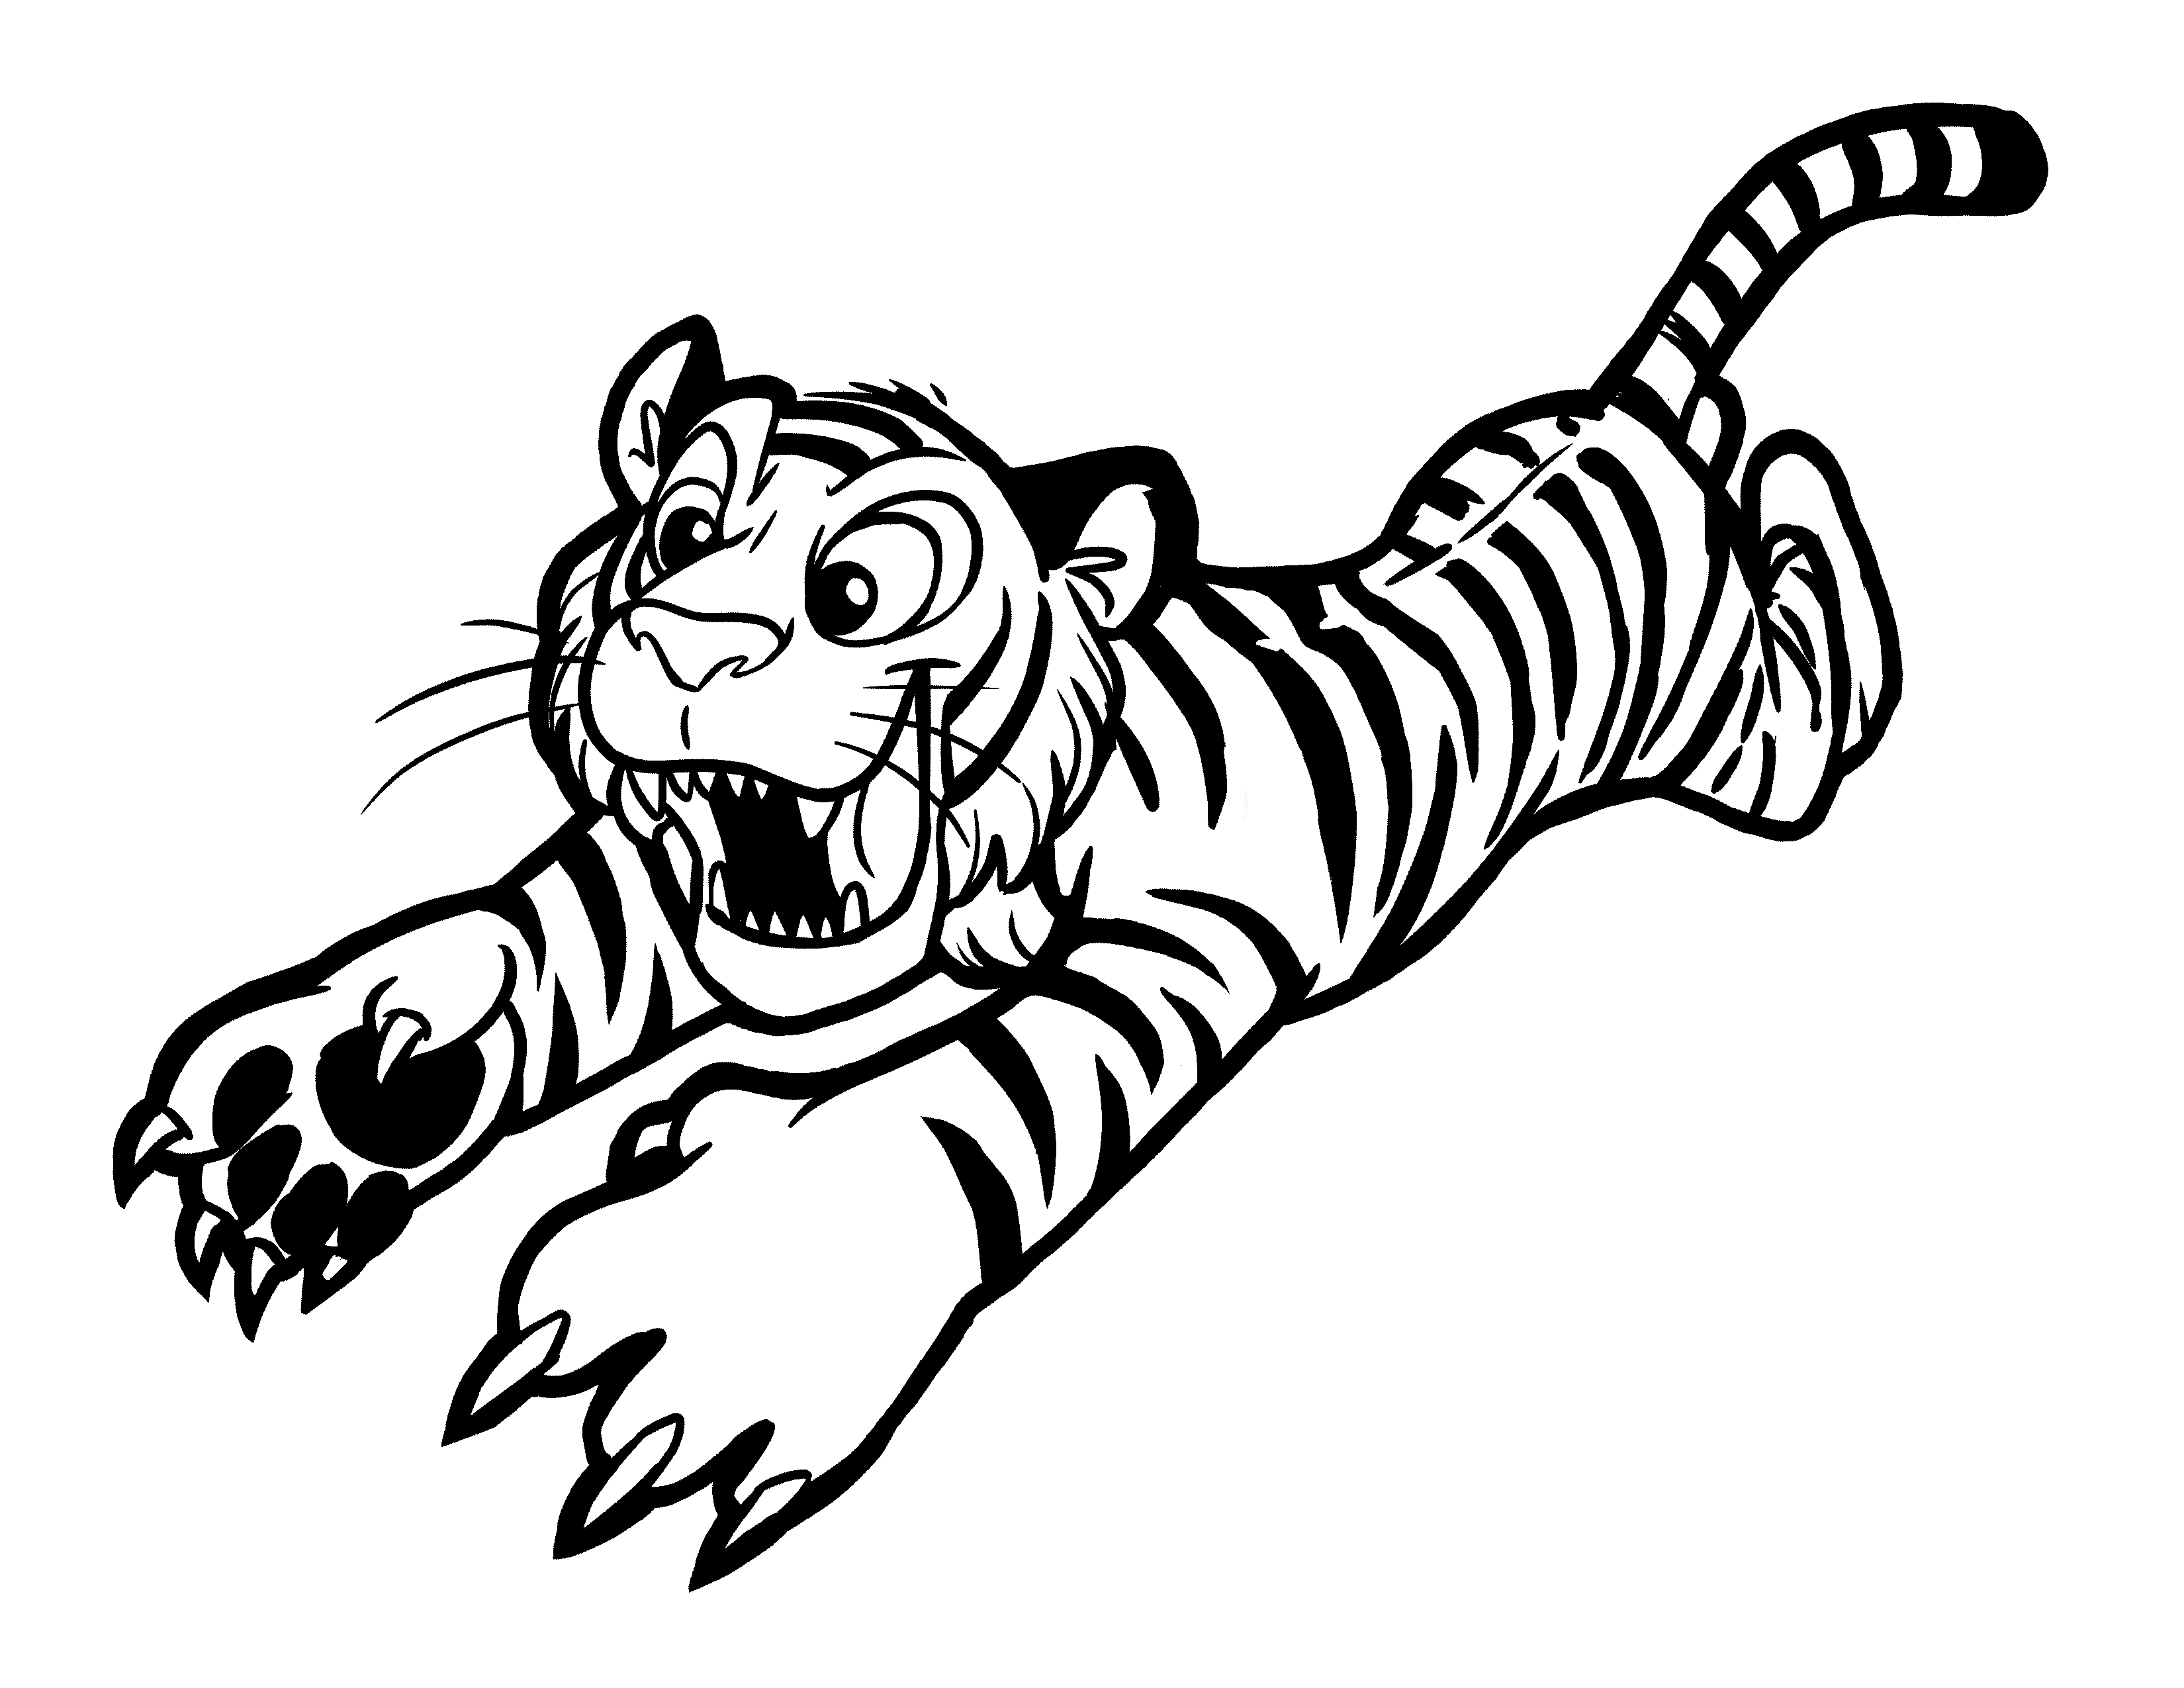 tiger images for colouring tiger coloring pages the sun flower pages images tiger for colouring